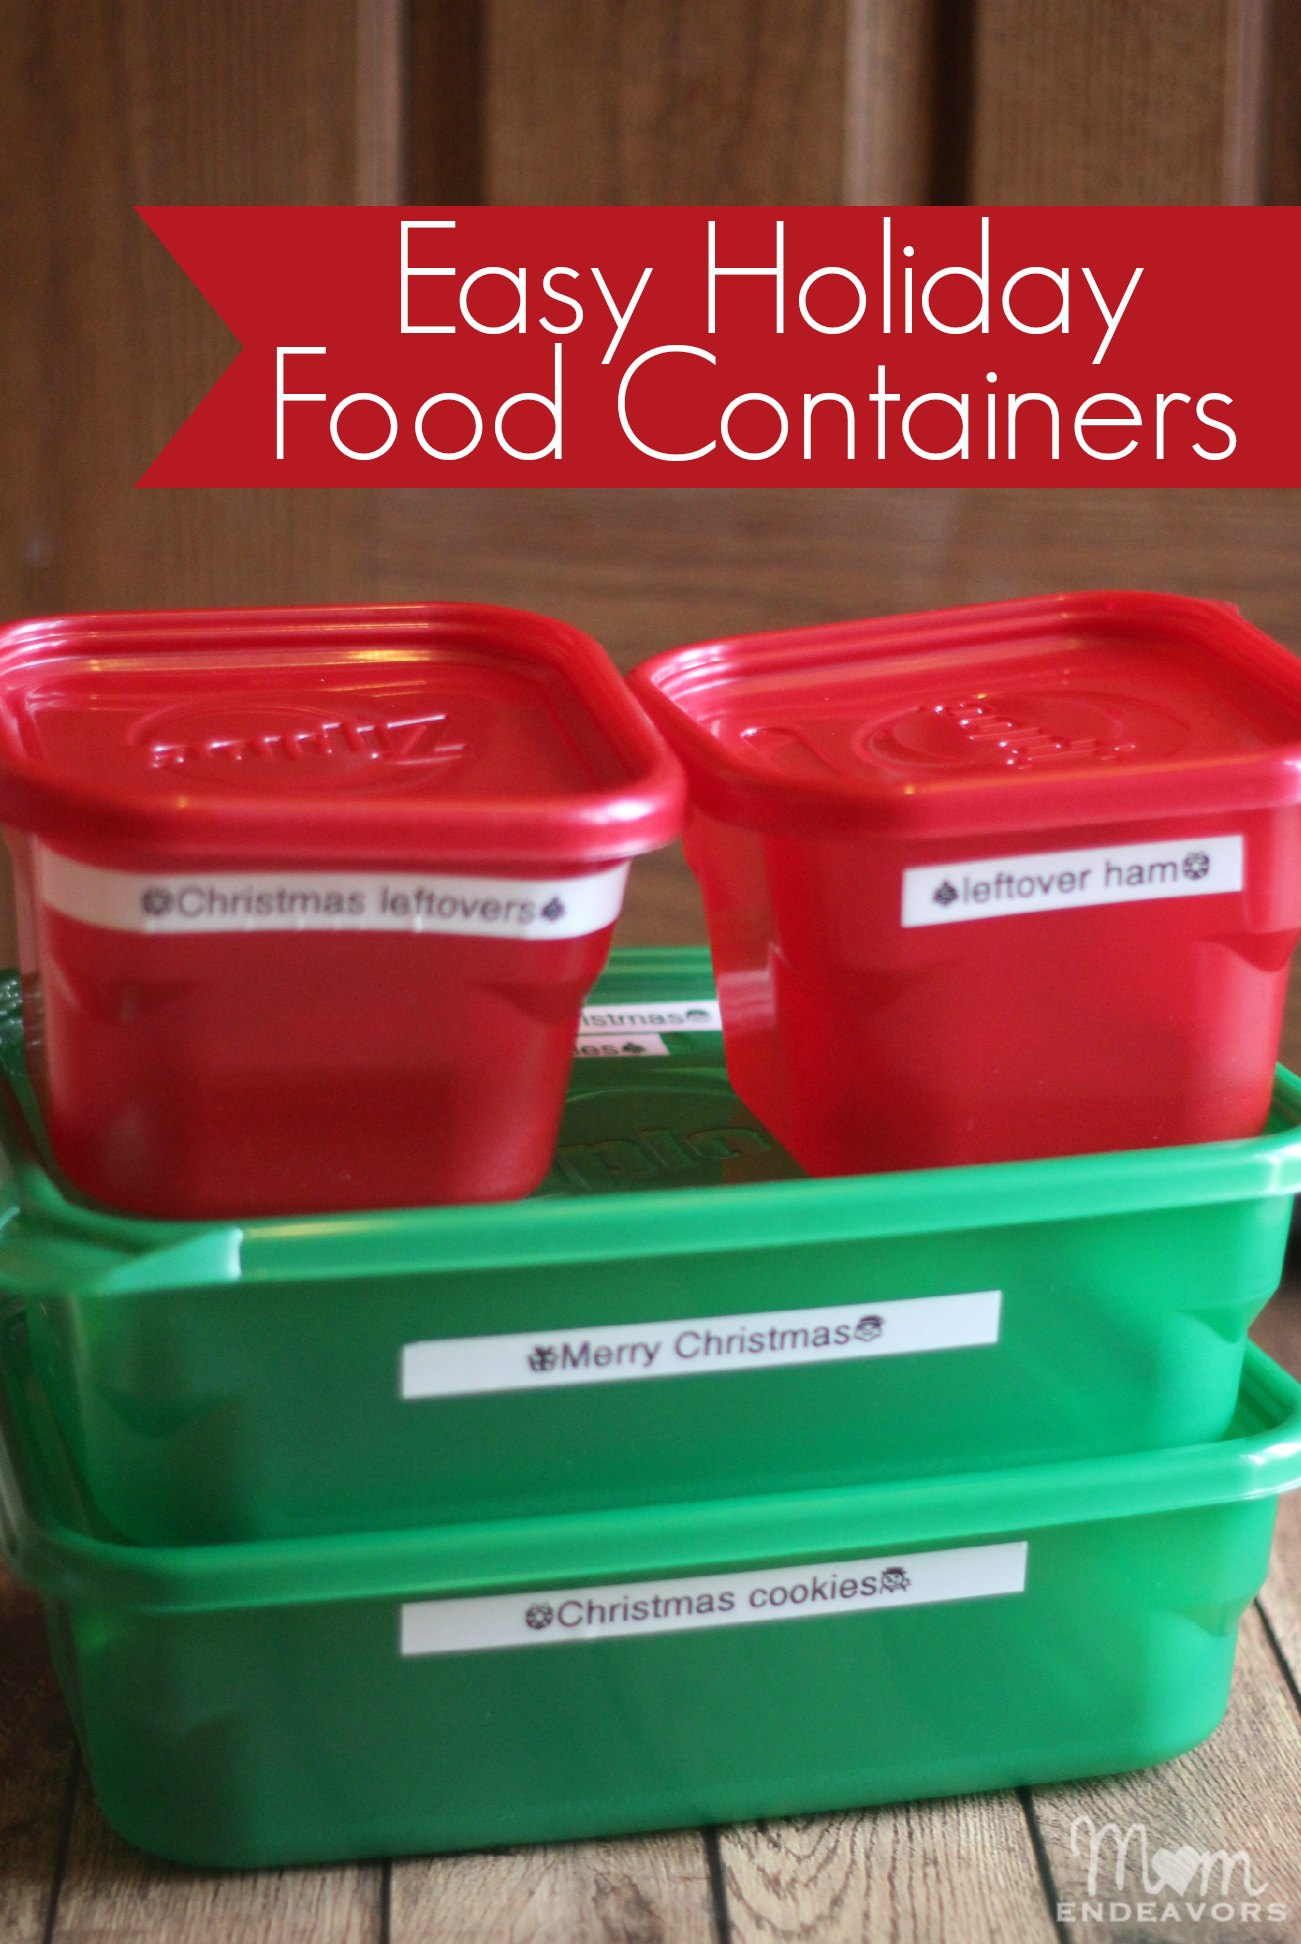 Easy Holiday Food Containers